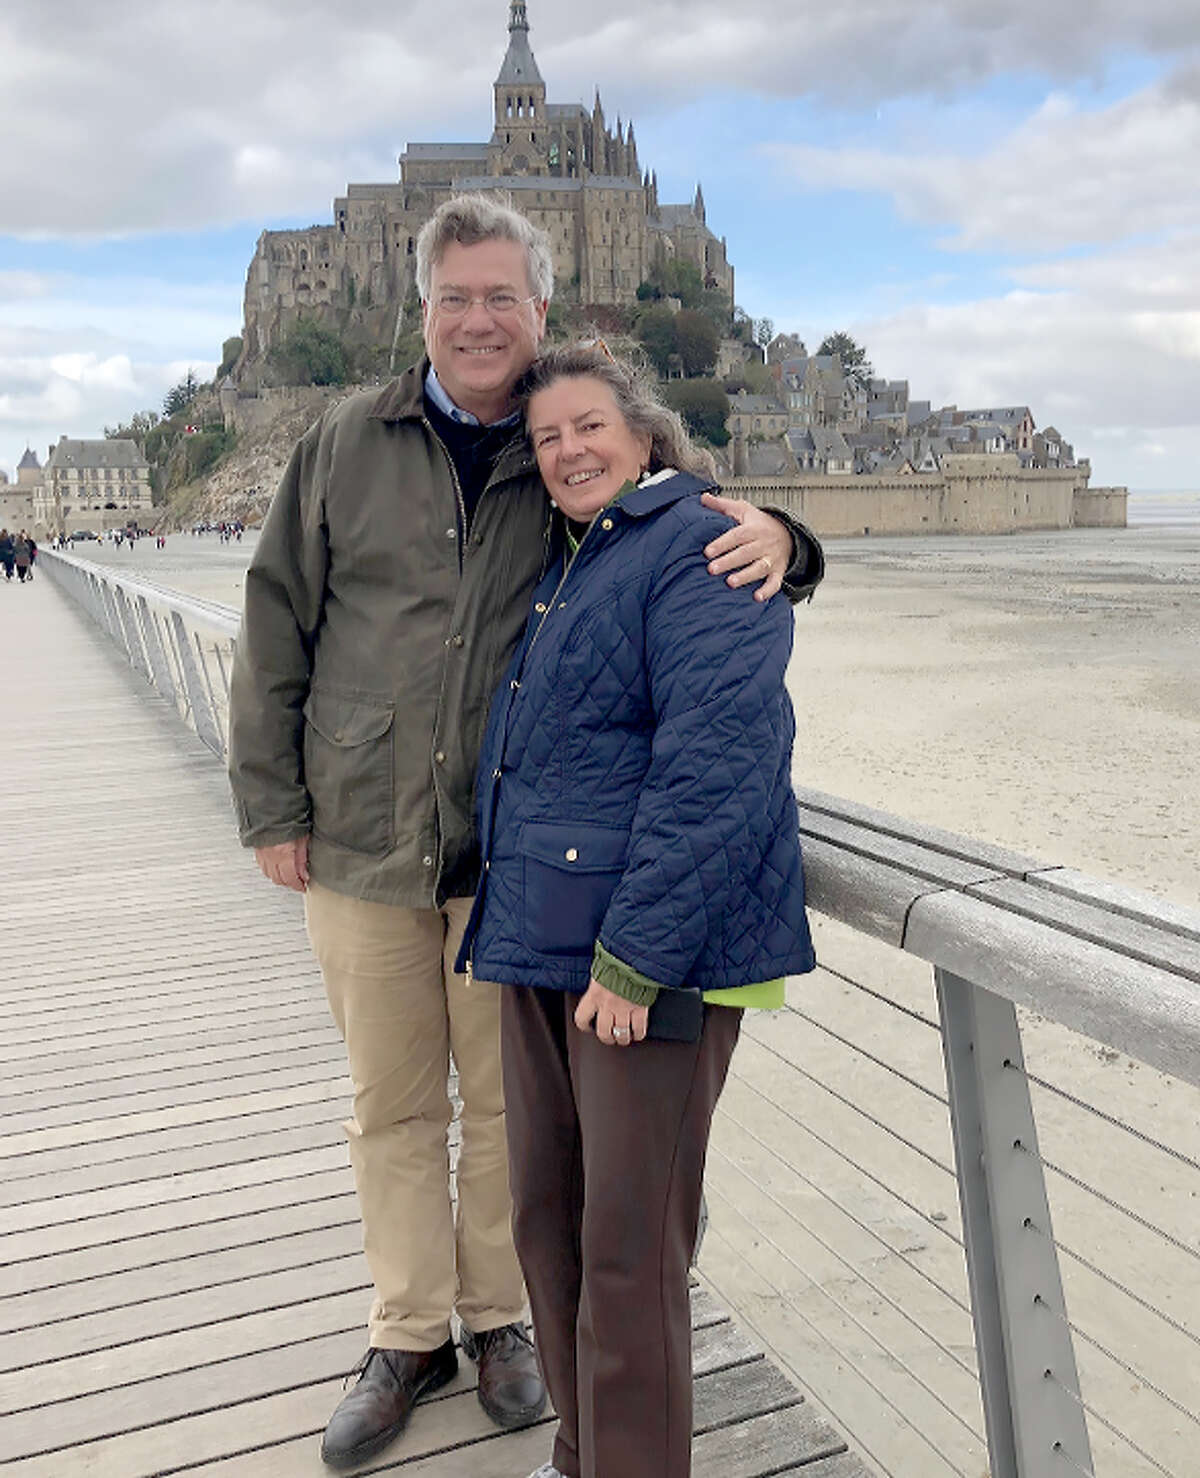 Stuart and Angie Kensinger met at Yale University in the 1980s. Since then, they've been influential in Houston's religious community, close friends and associates say.